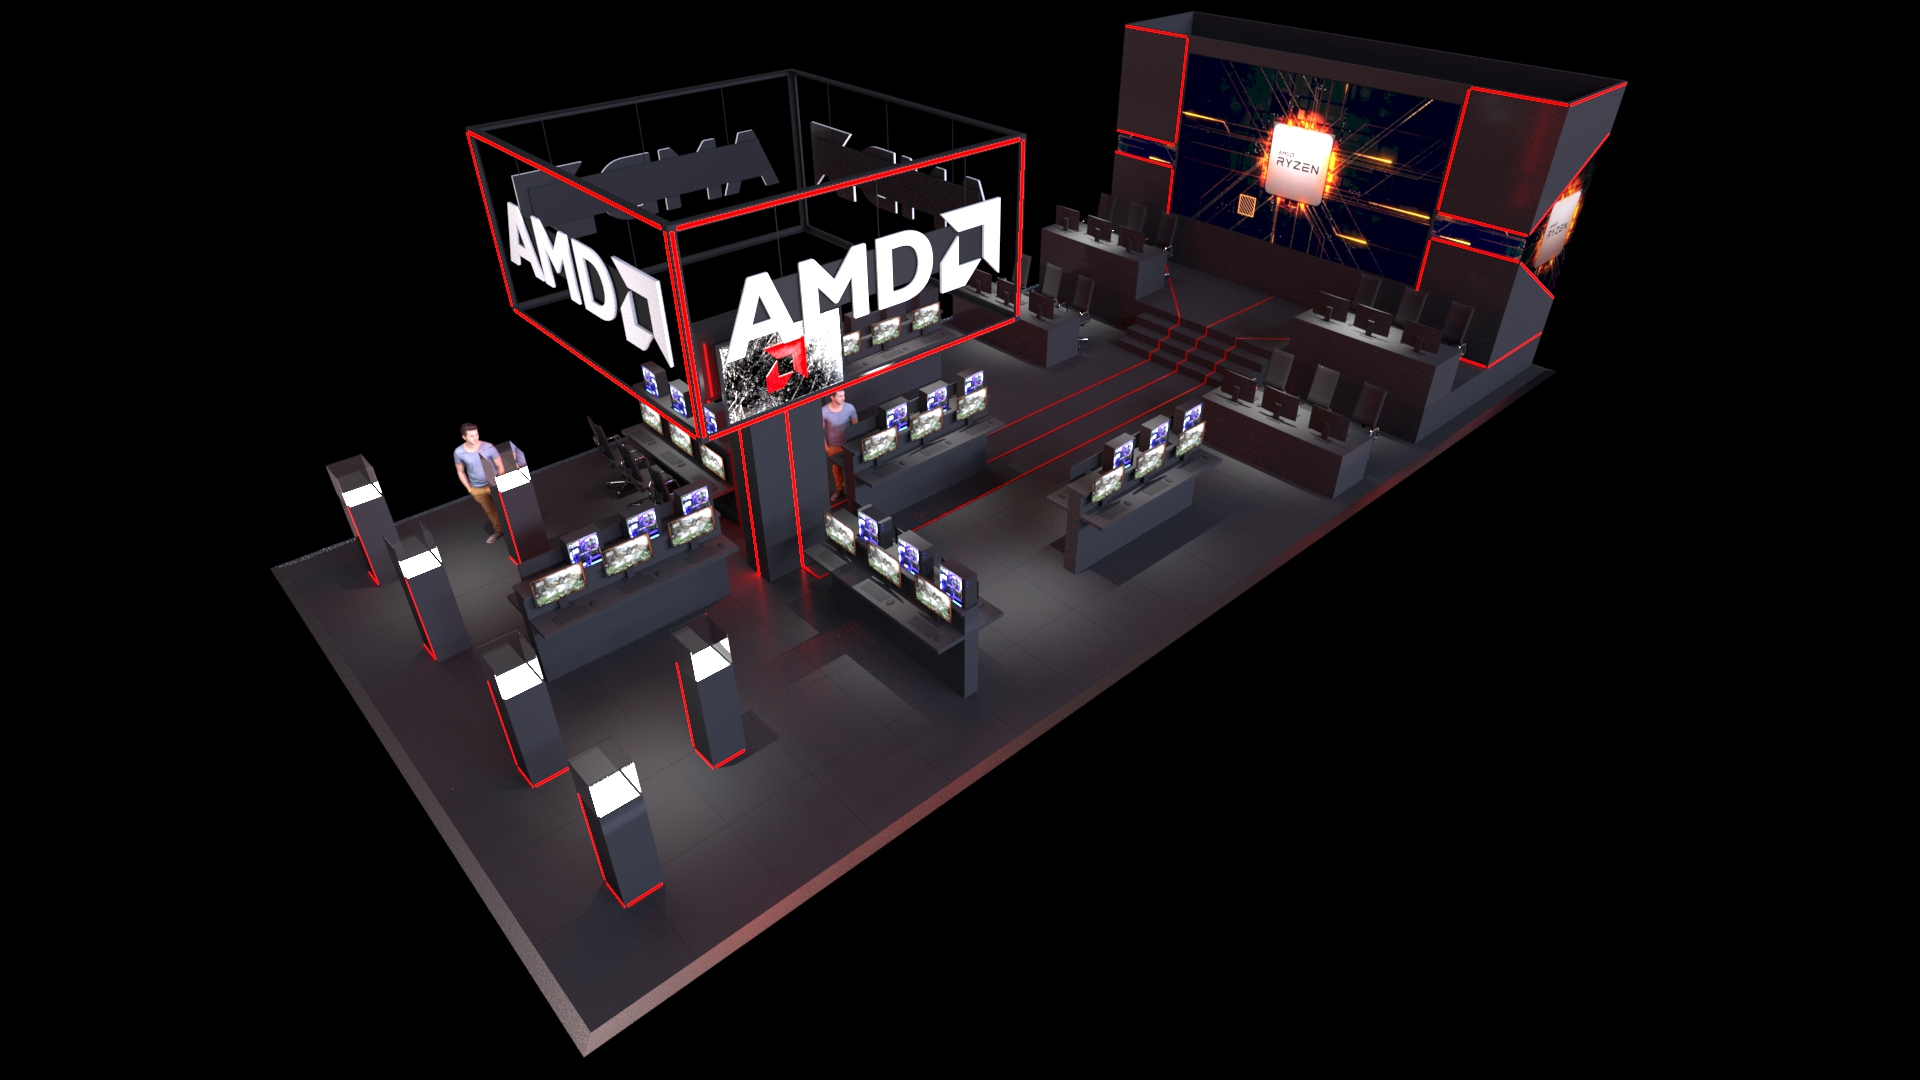 AMD Stand Concept